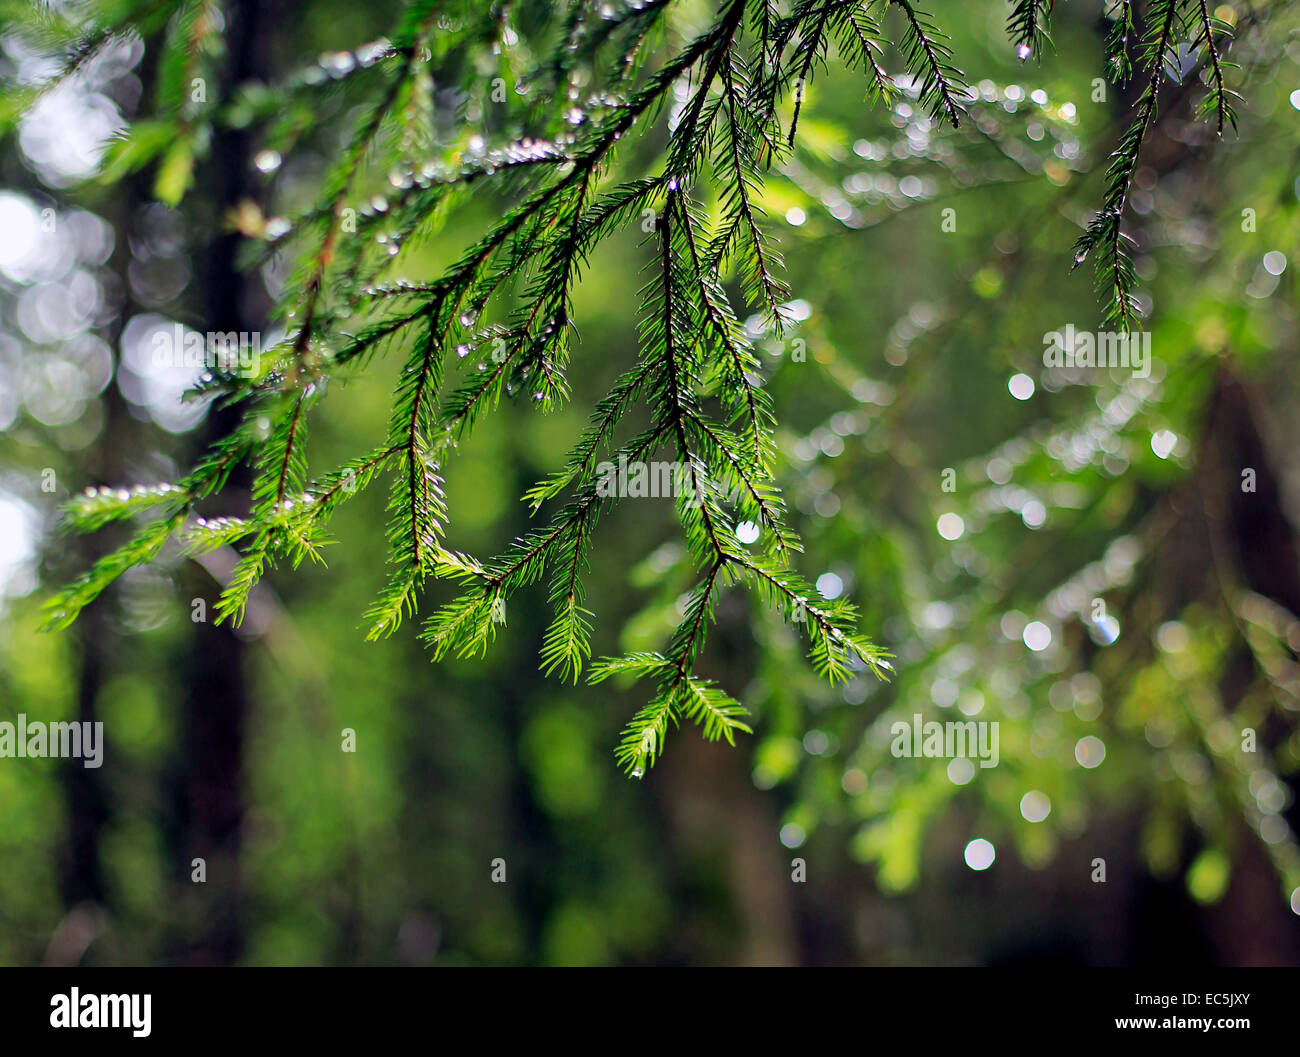 Spruce branch with water drops - Stock Image